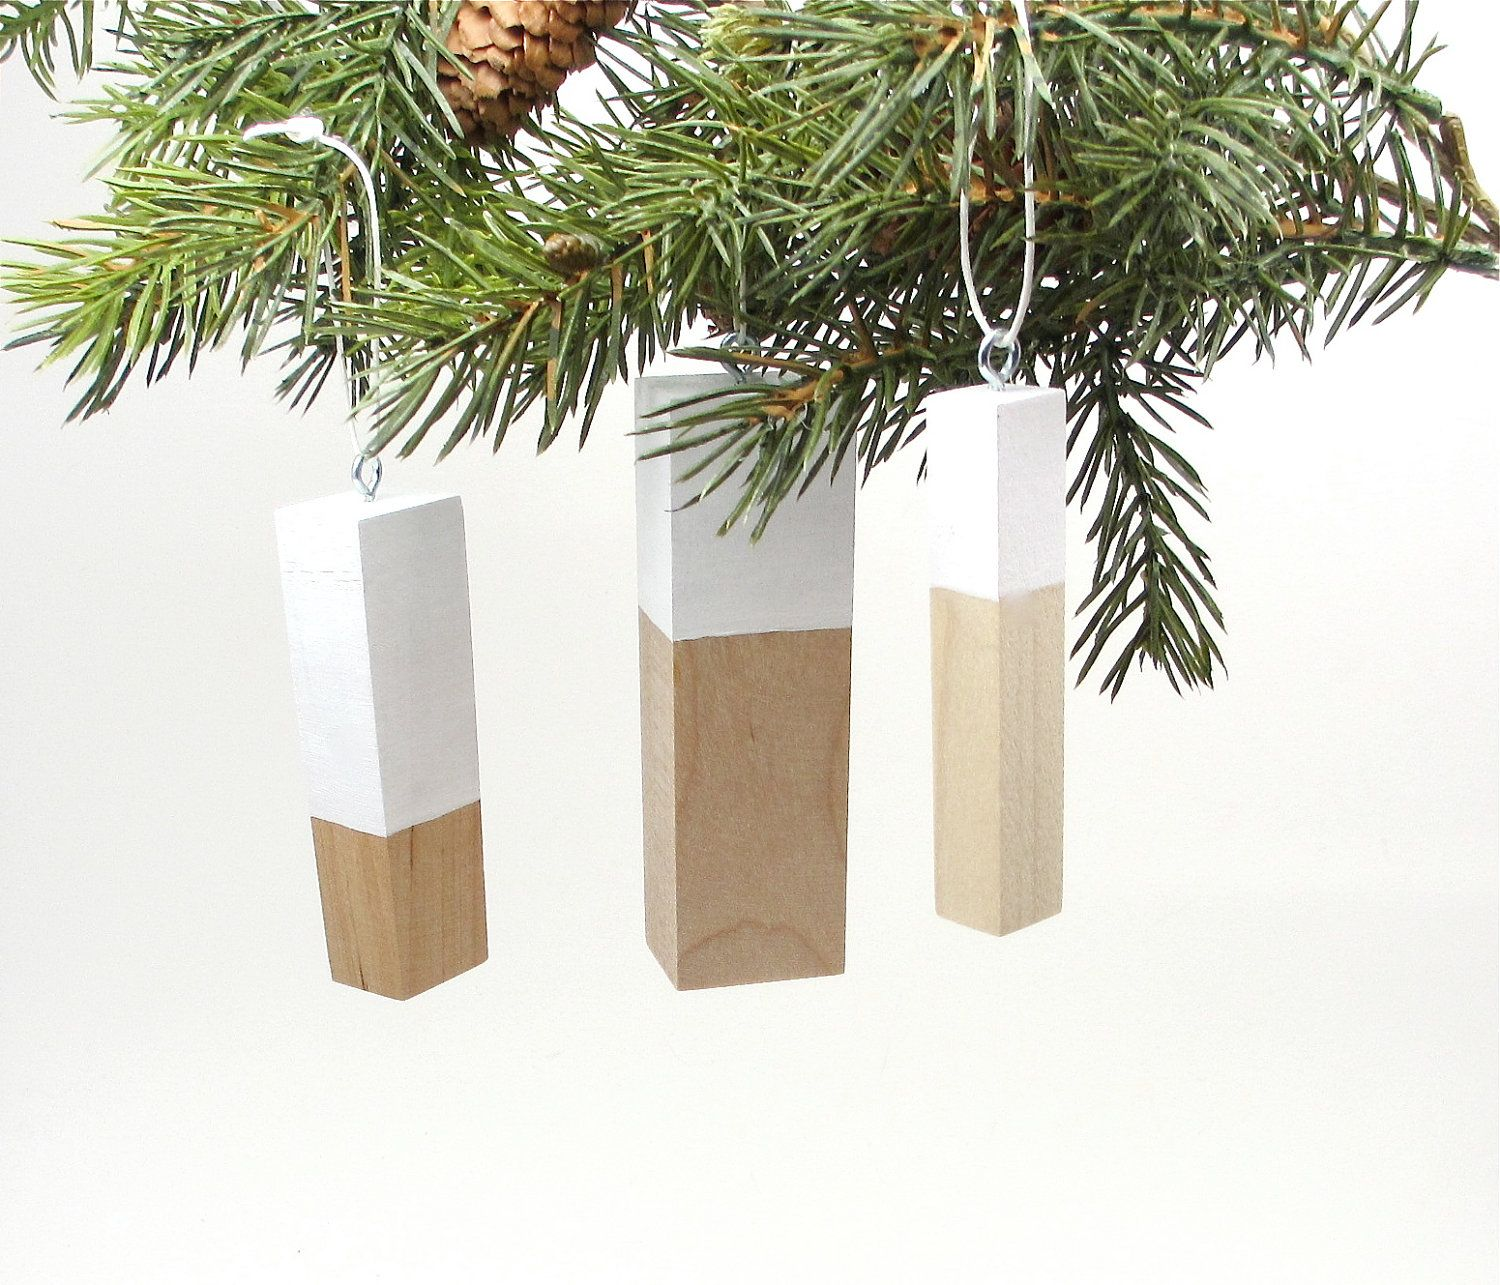 Wood Tree Ornaments Scandinavian Design Christmas Ornaments Modern Wooden Holiday Decorations 42 00 Via Etsy Wood Ornaments Christmas Diy Minimalist Home Decor